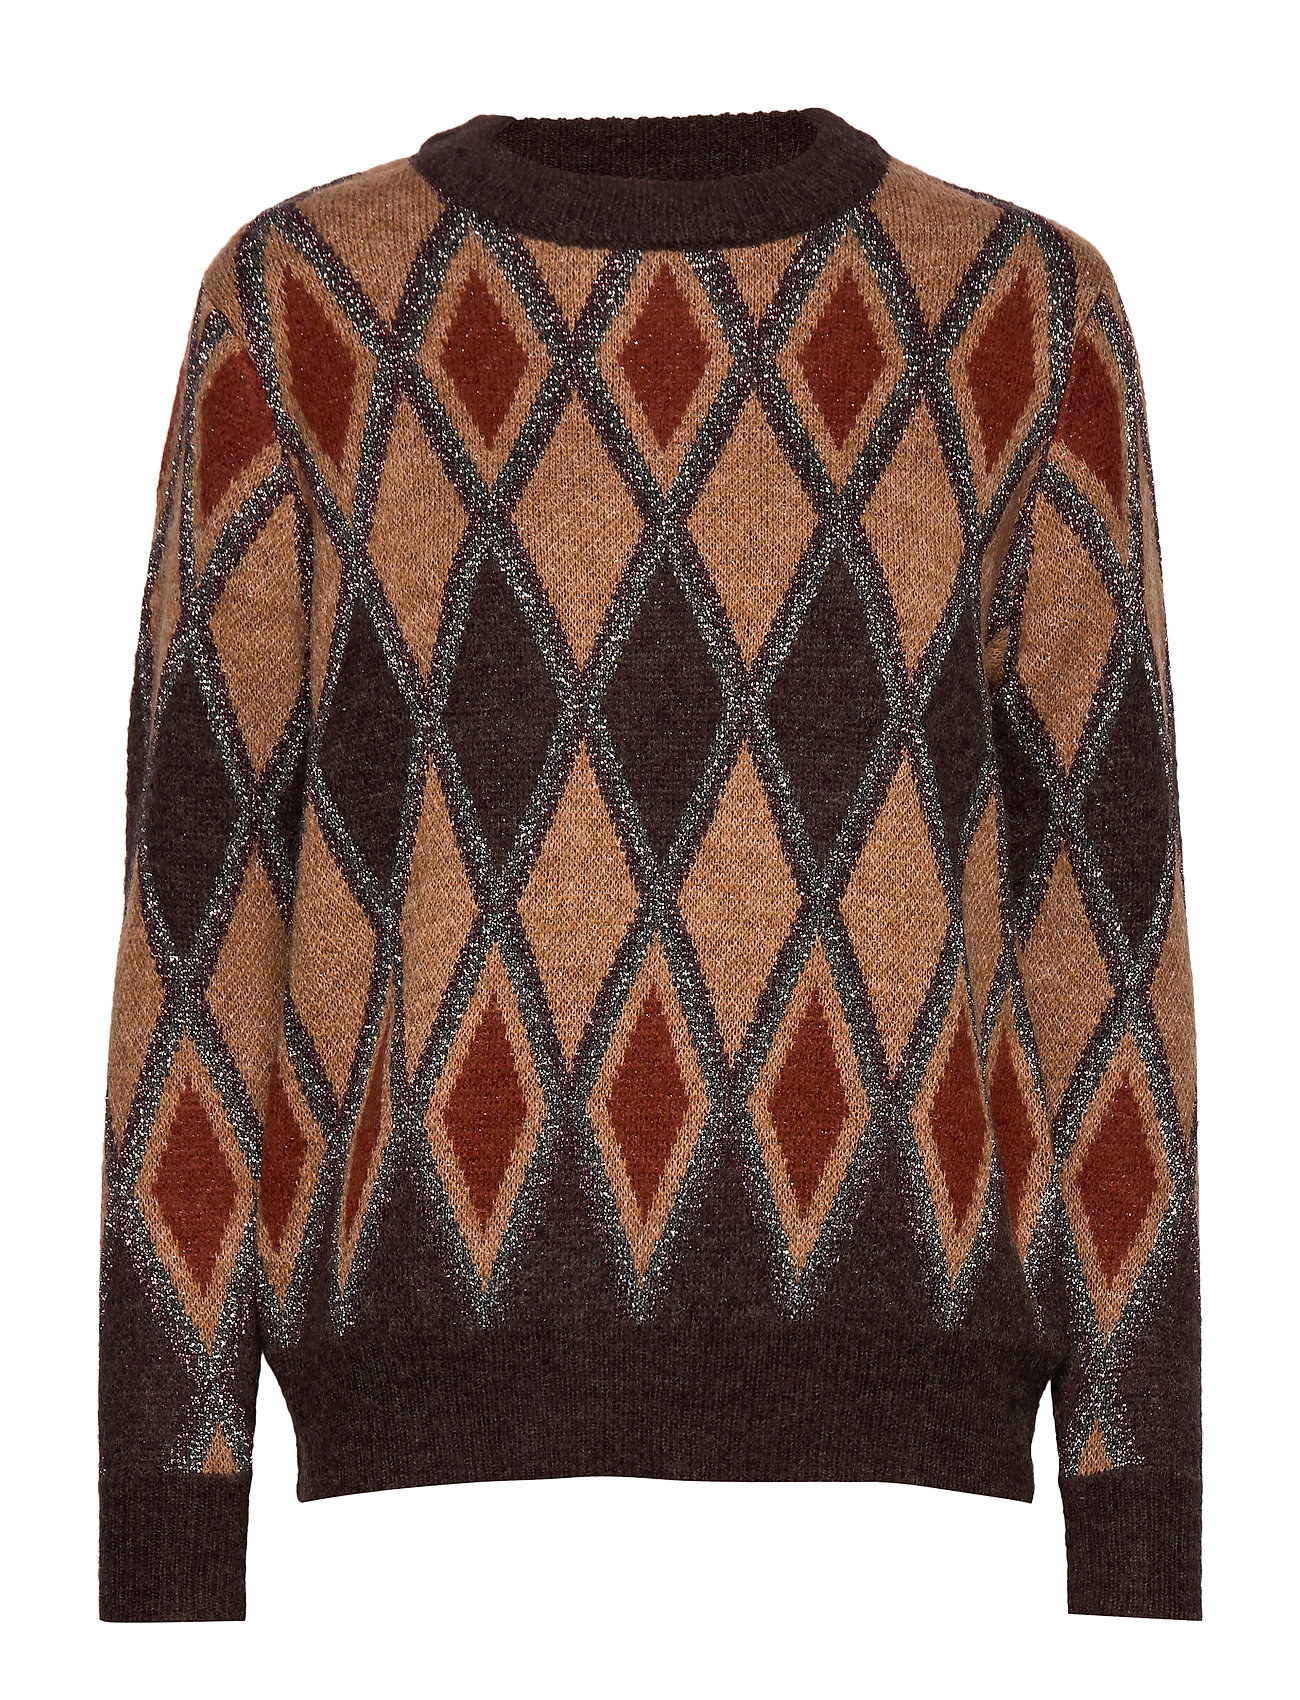 b.young BYMIKKA ARGYLE JUMPER - - CHOCOLATE BROWN COMBI